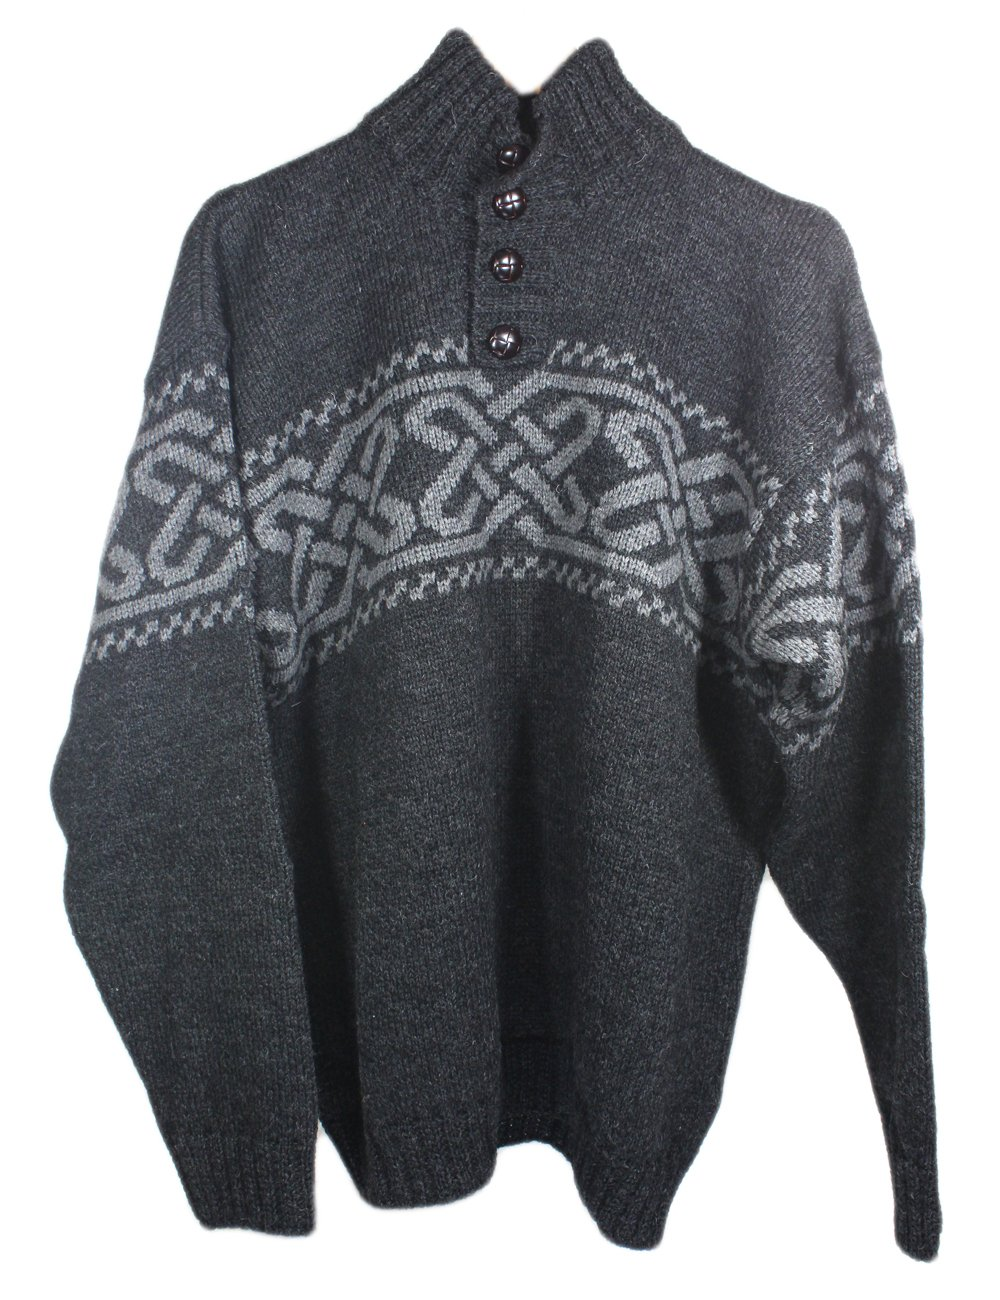 Carraig Donn Men's 100% Irish Merino Wool Sweater with a Trinity Knot Design, Charcoal, Large